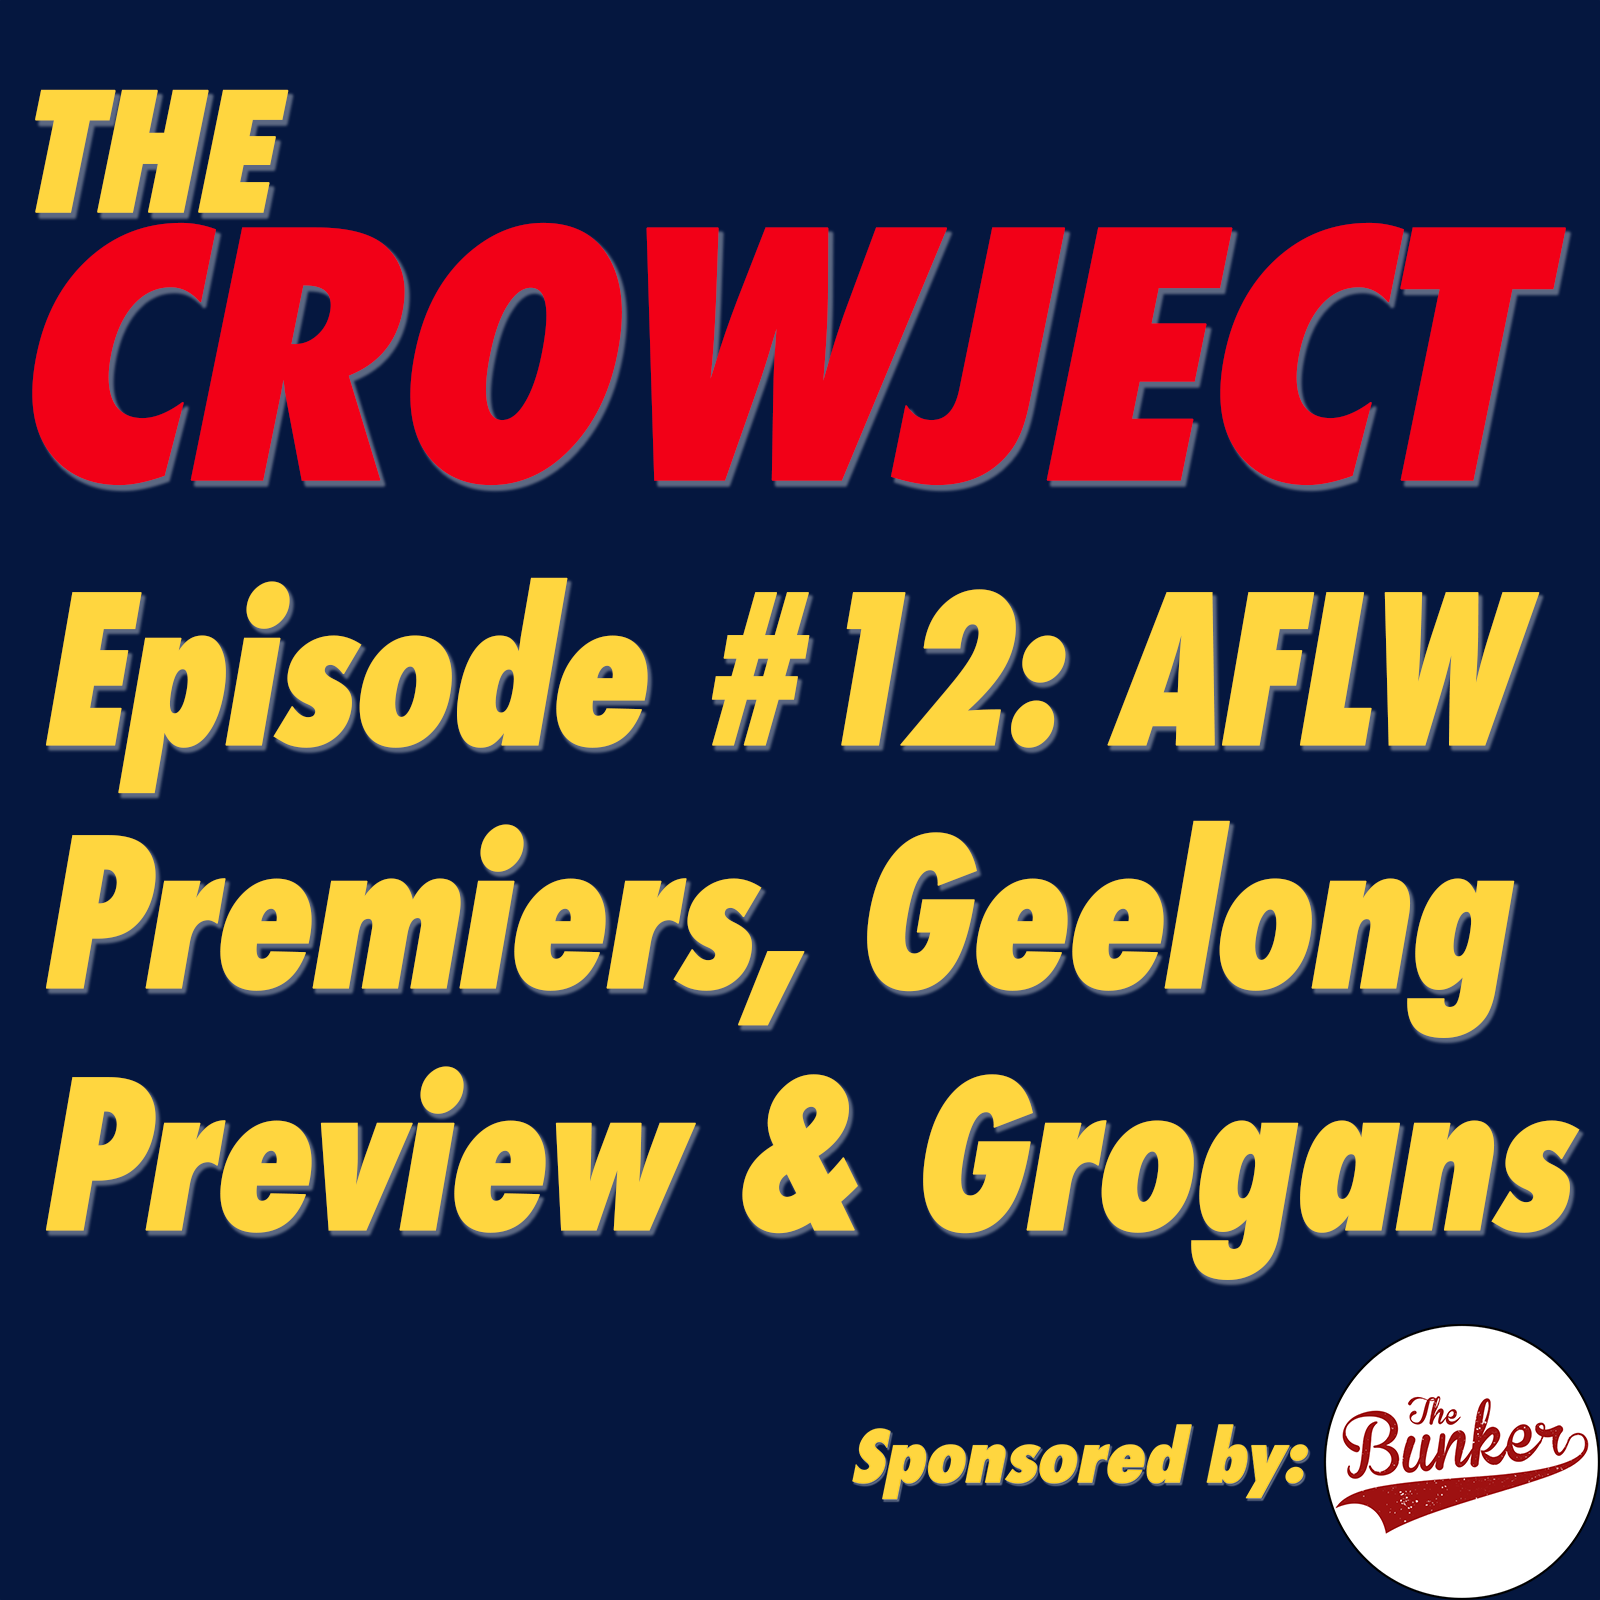 AFLW Premiers, Geelong Preview & Grogans